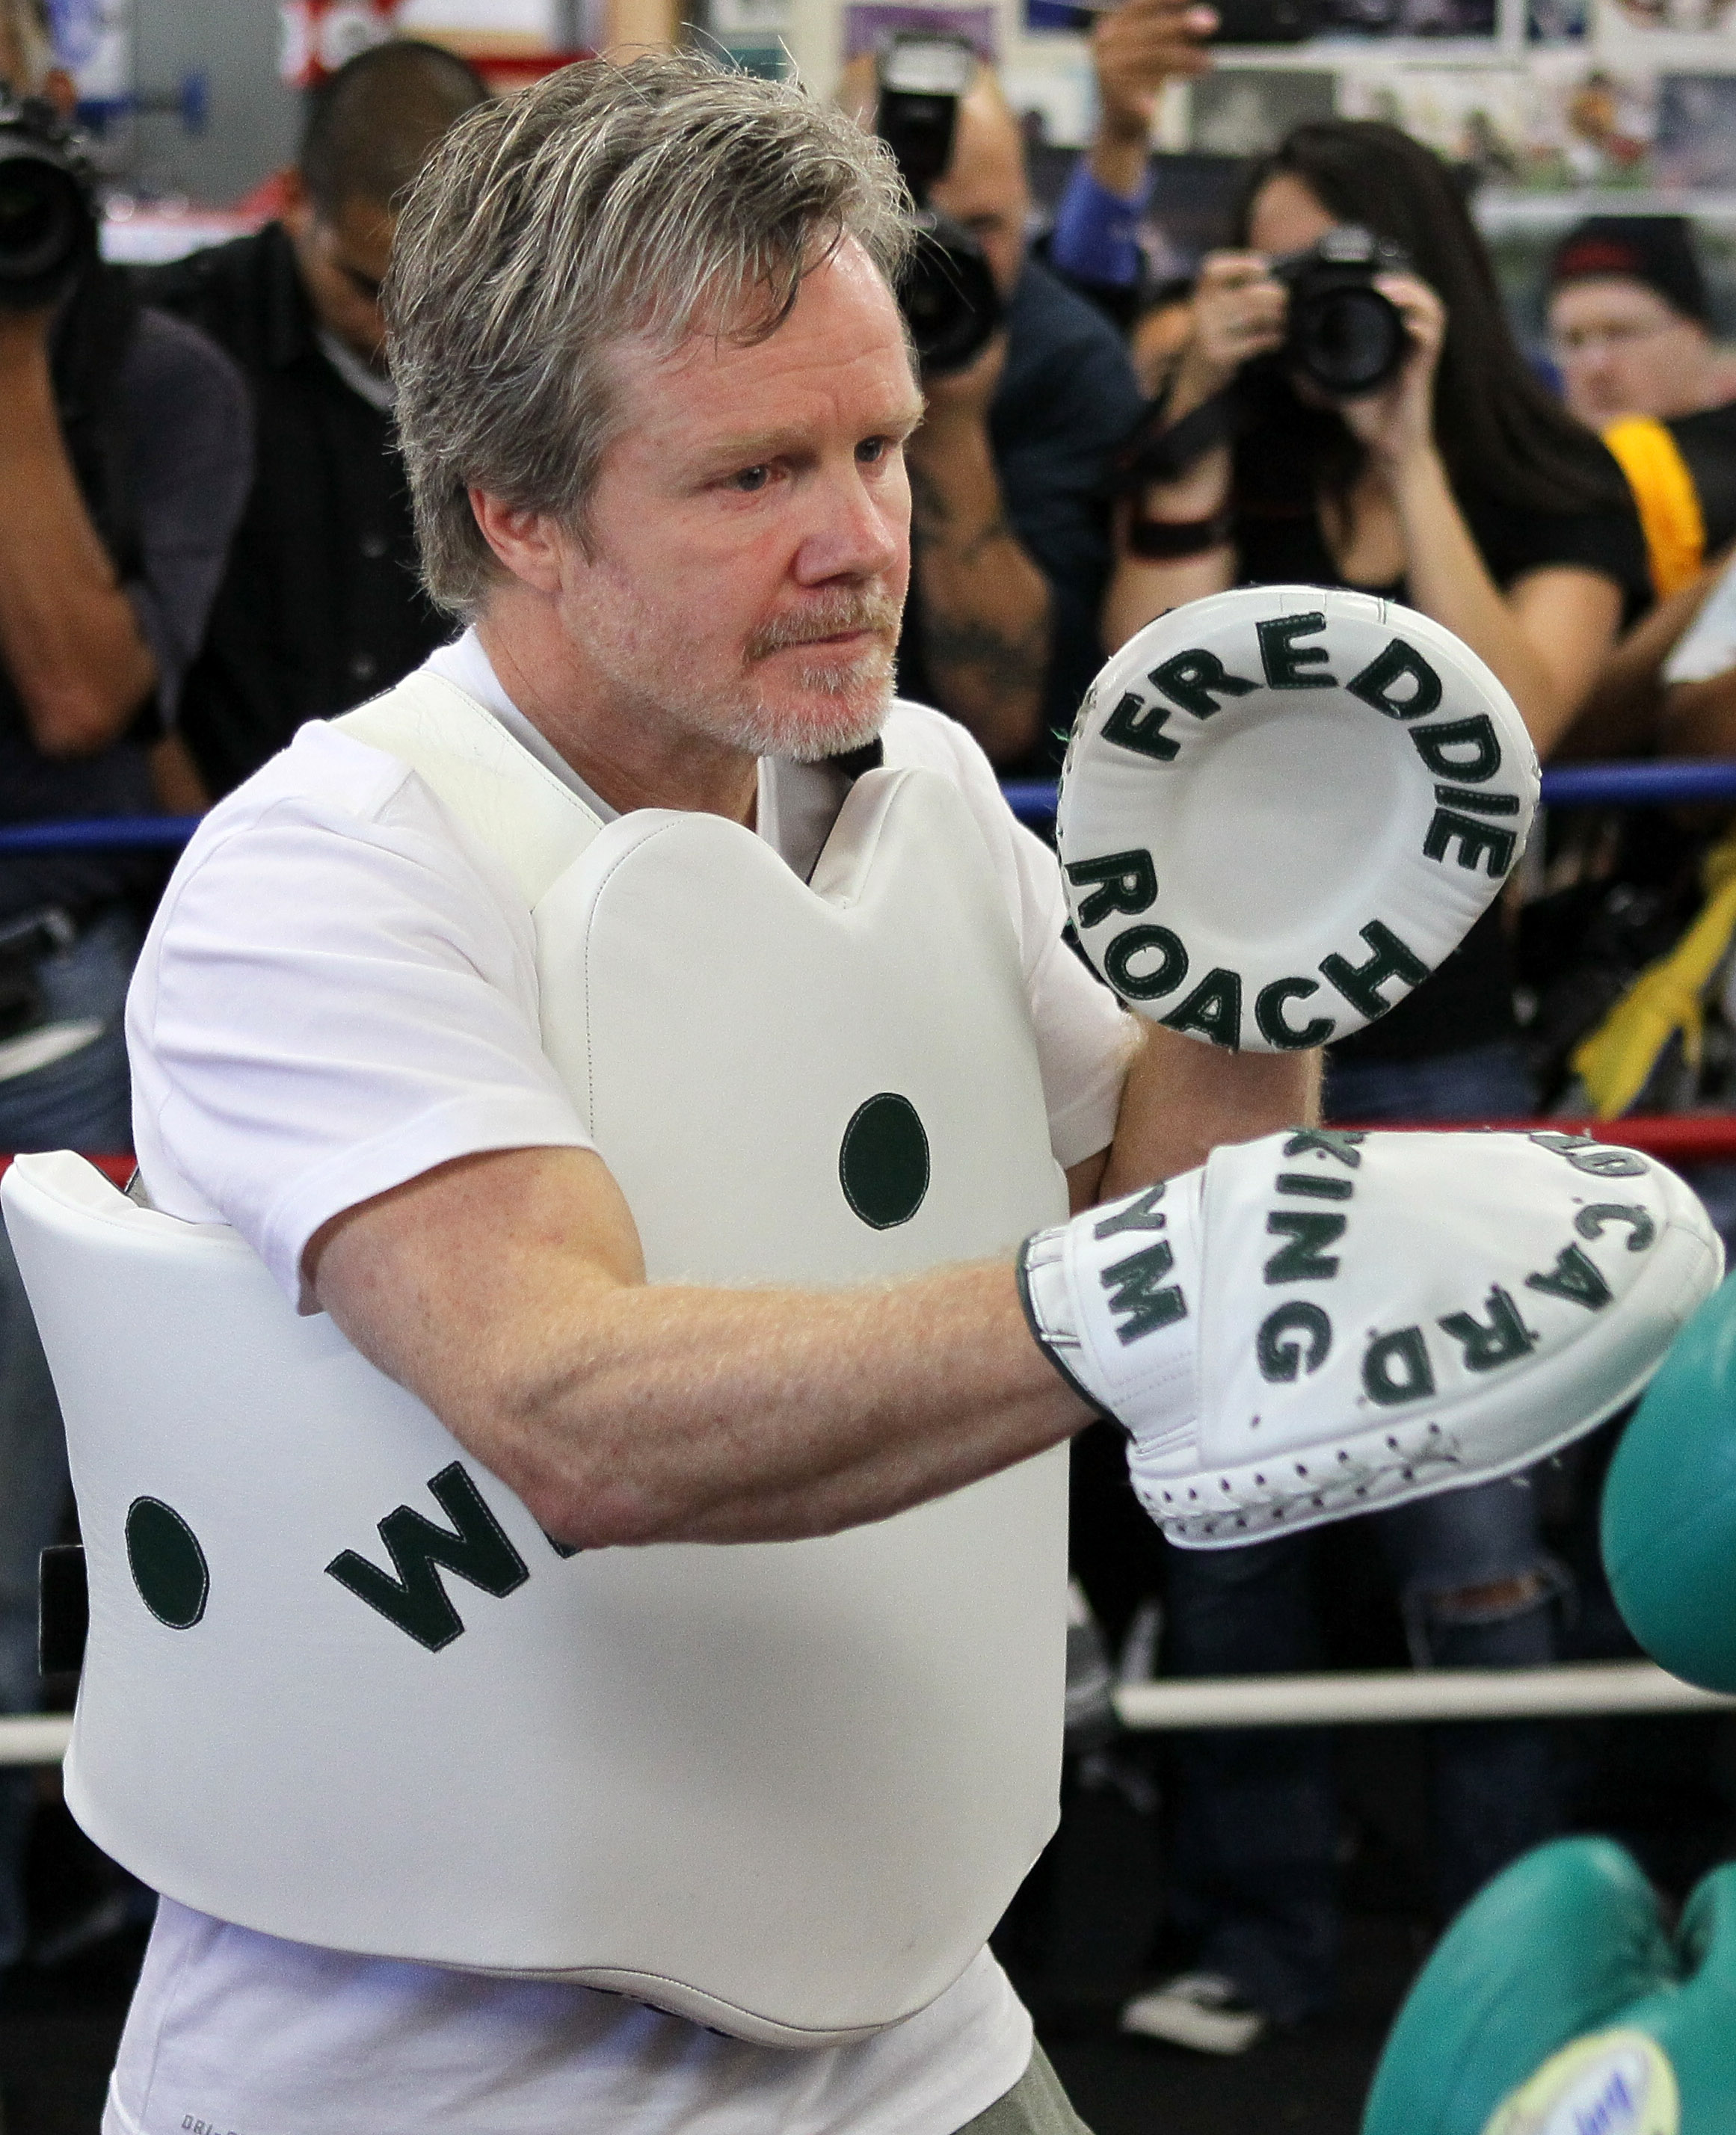 Freddie Roach thinks he is still part of the Olympic team's training program. (Getty Images)